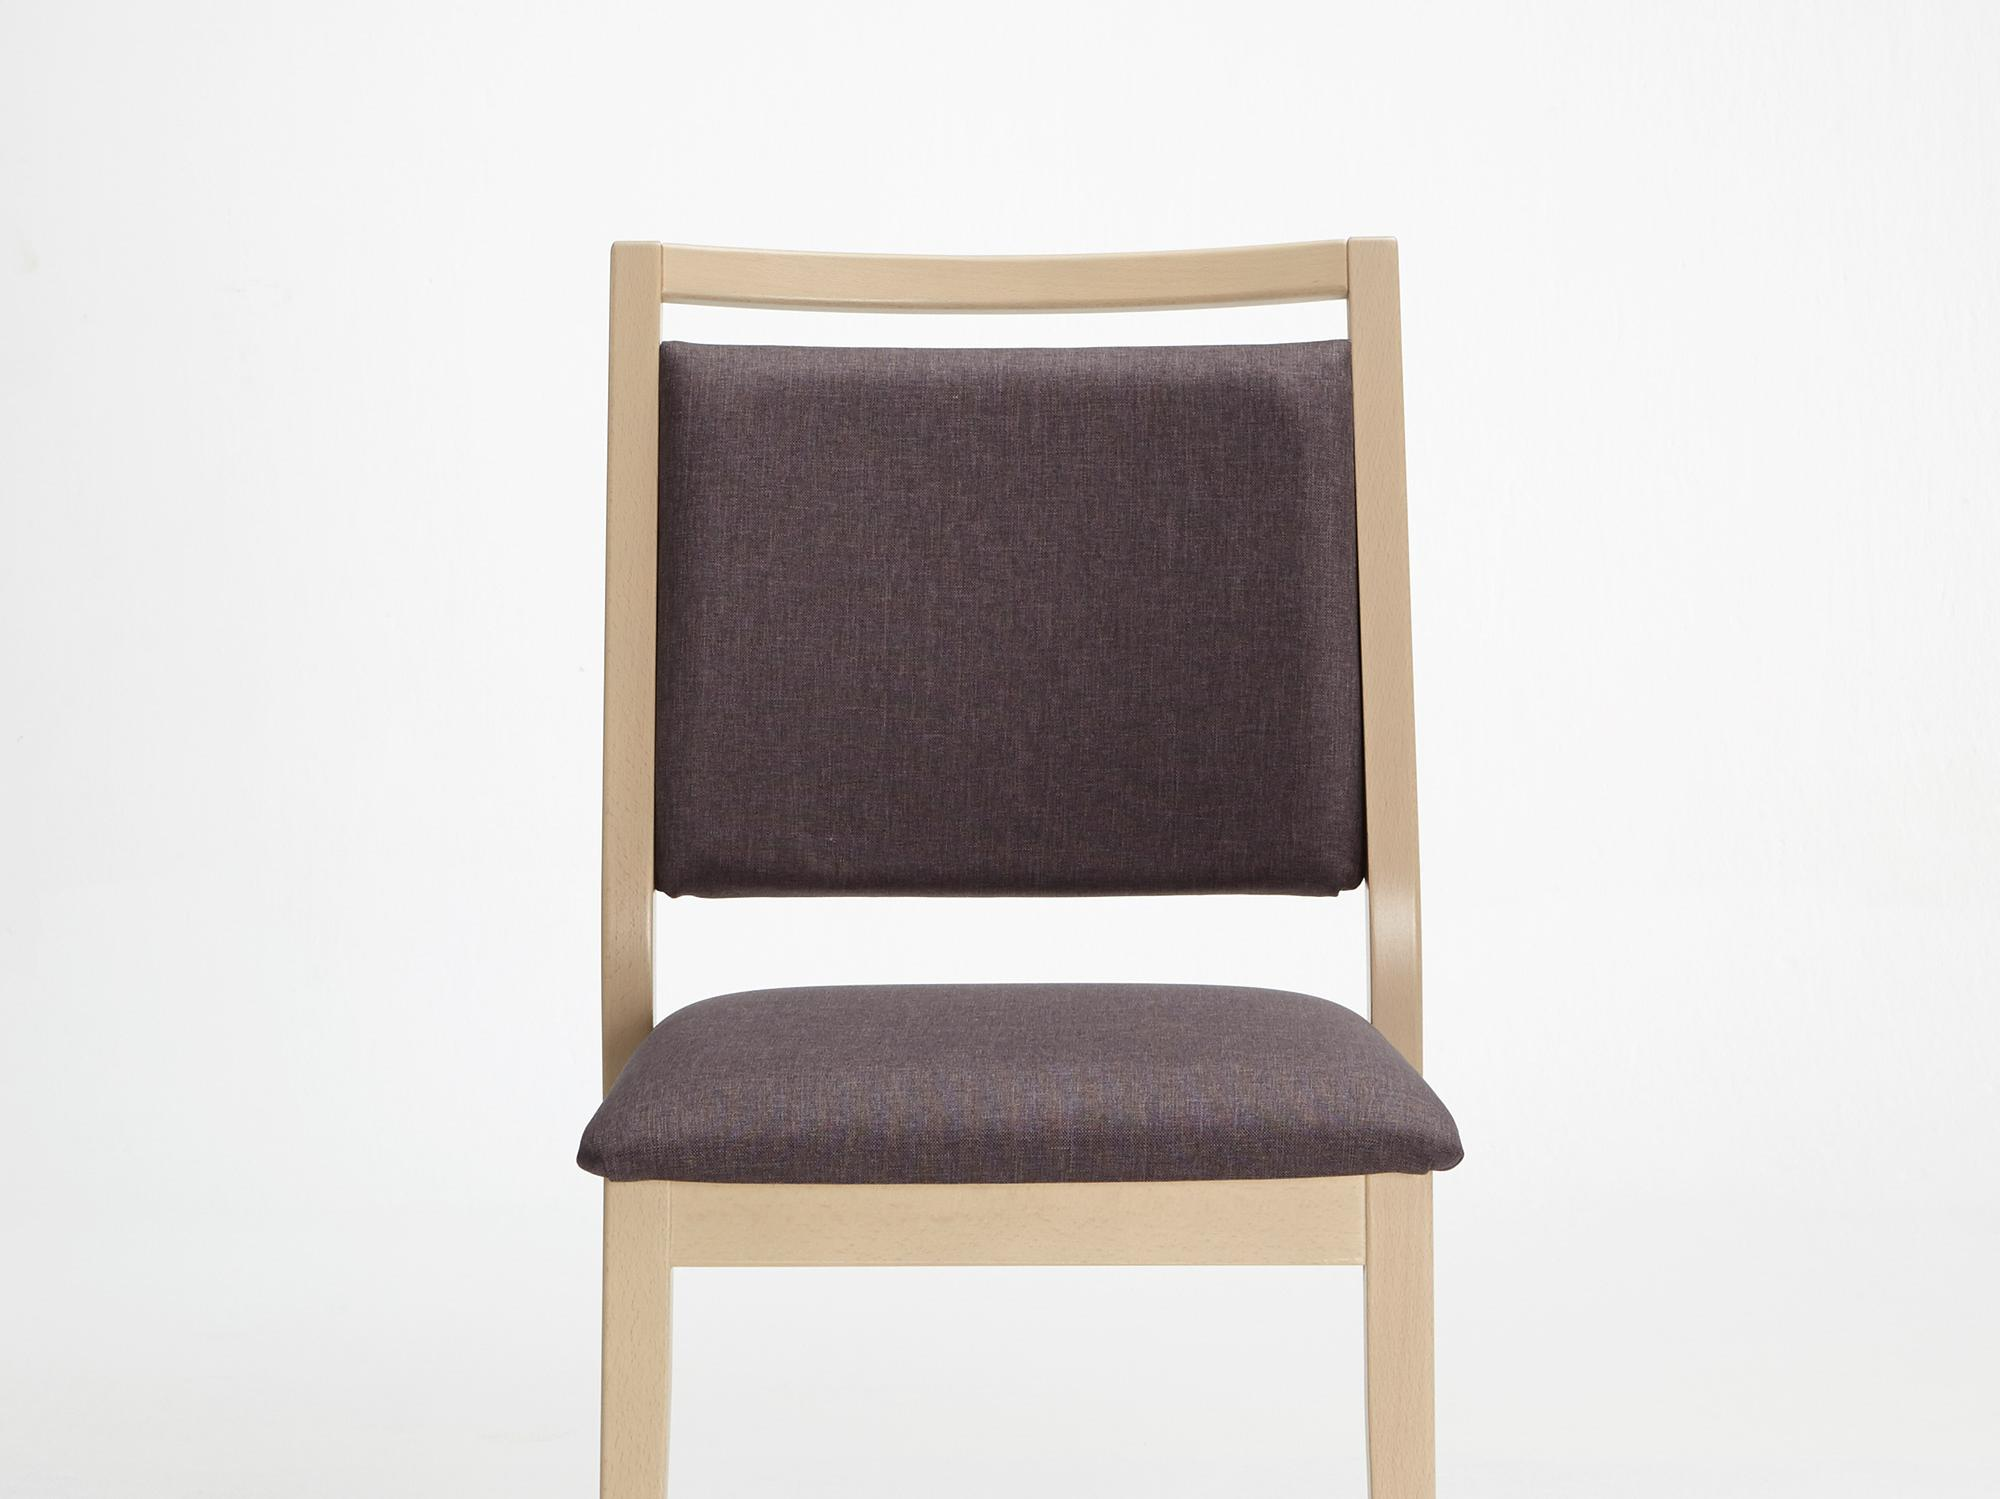 The Mavo model as a stackable chair without armrests